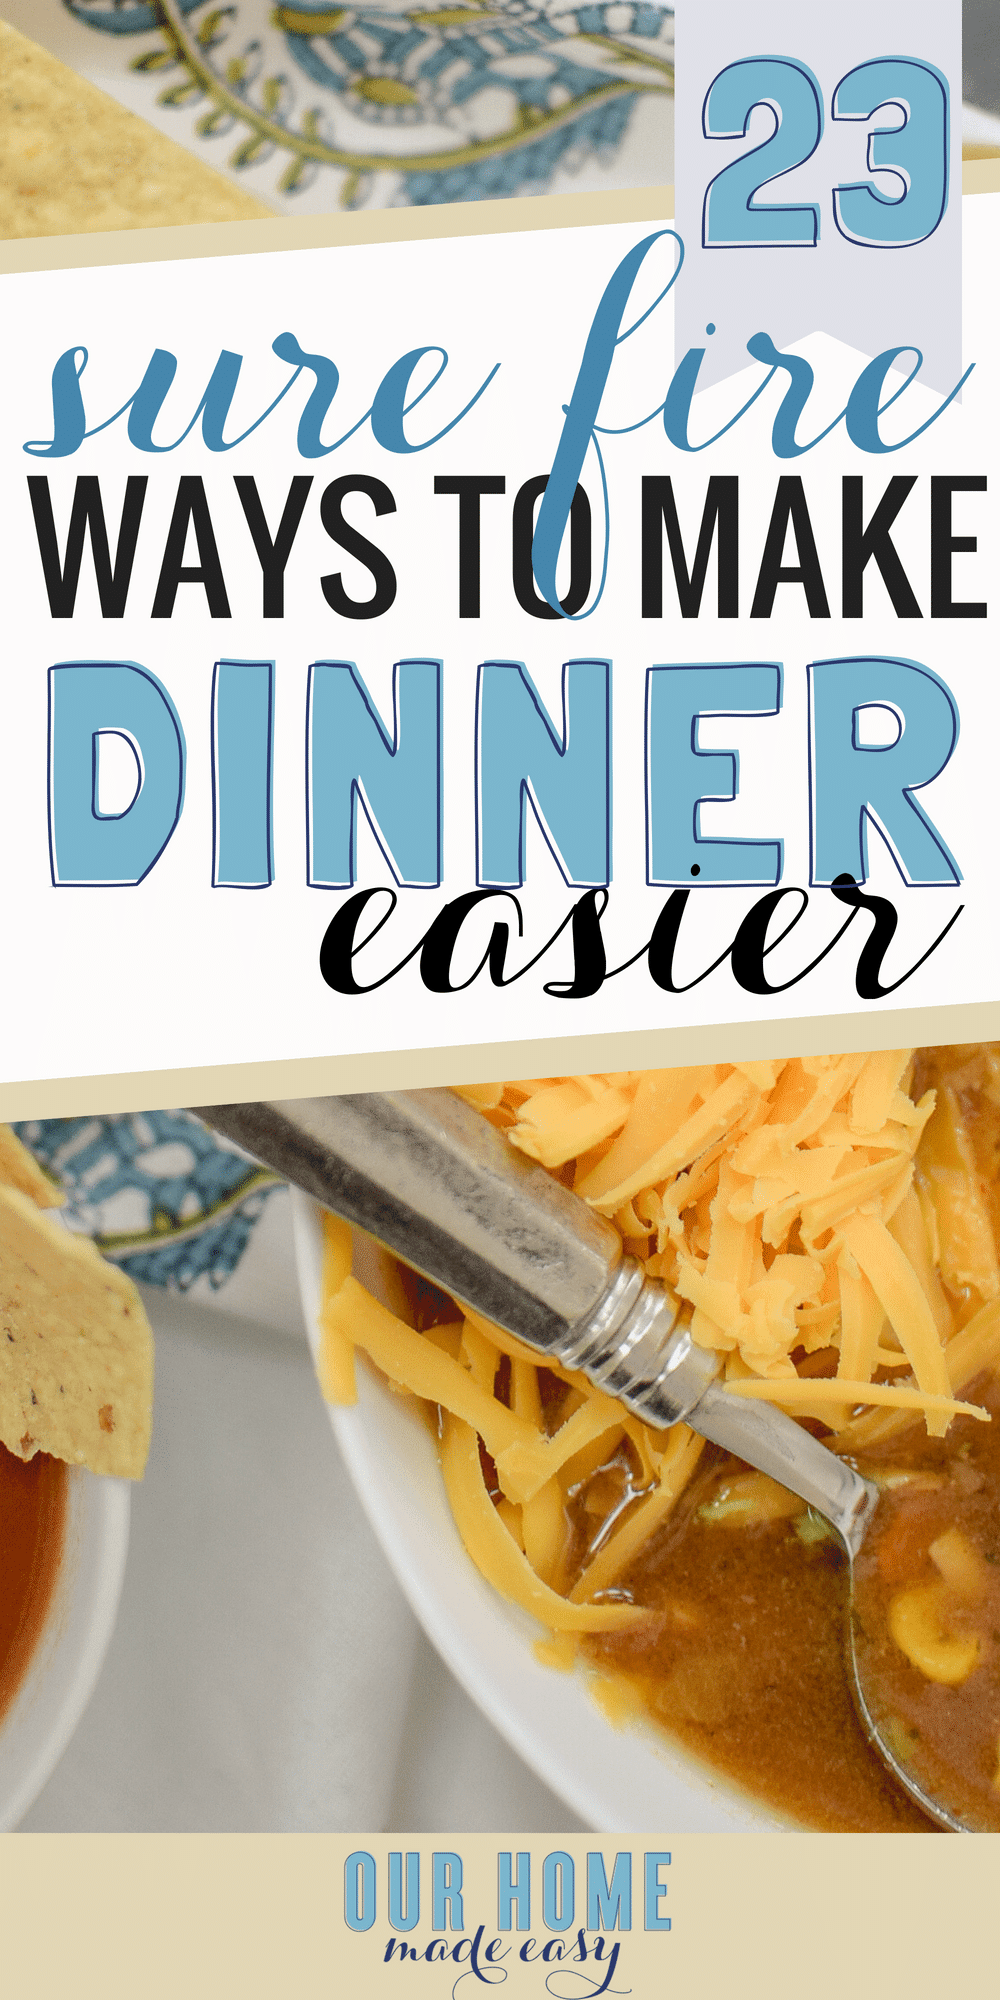 The best food bloggers are sharing their advice on how to make dinner easier during the week! They are sharing their best busy mom advice & recipes! #dinner #recipe #dinnerrecipes #workingmom #momlife